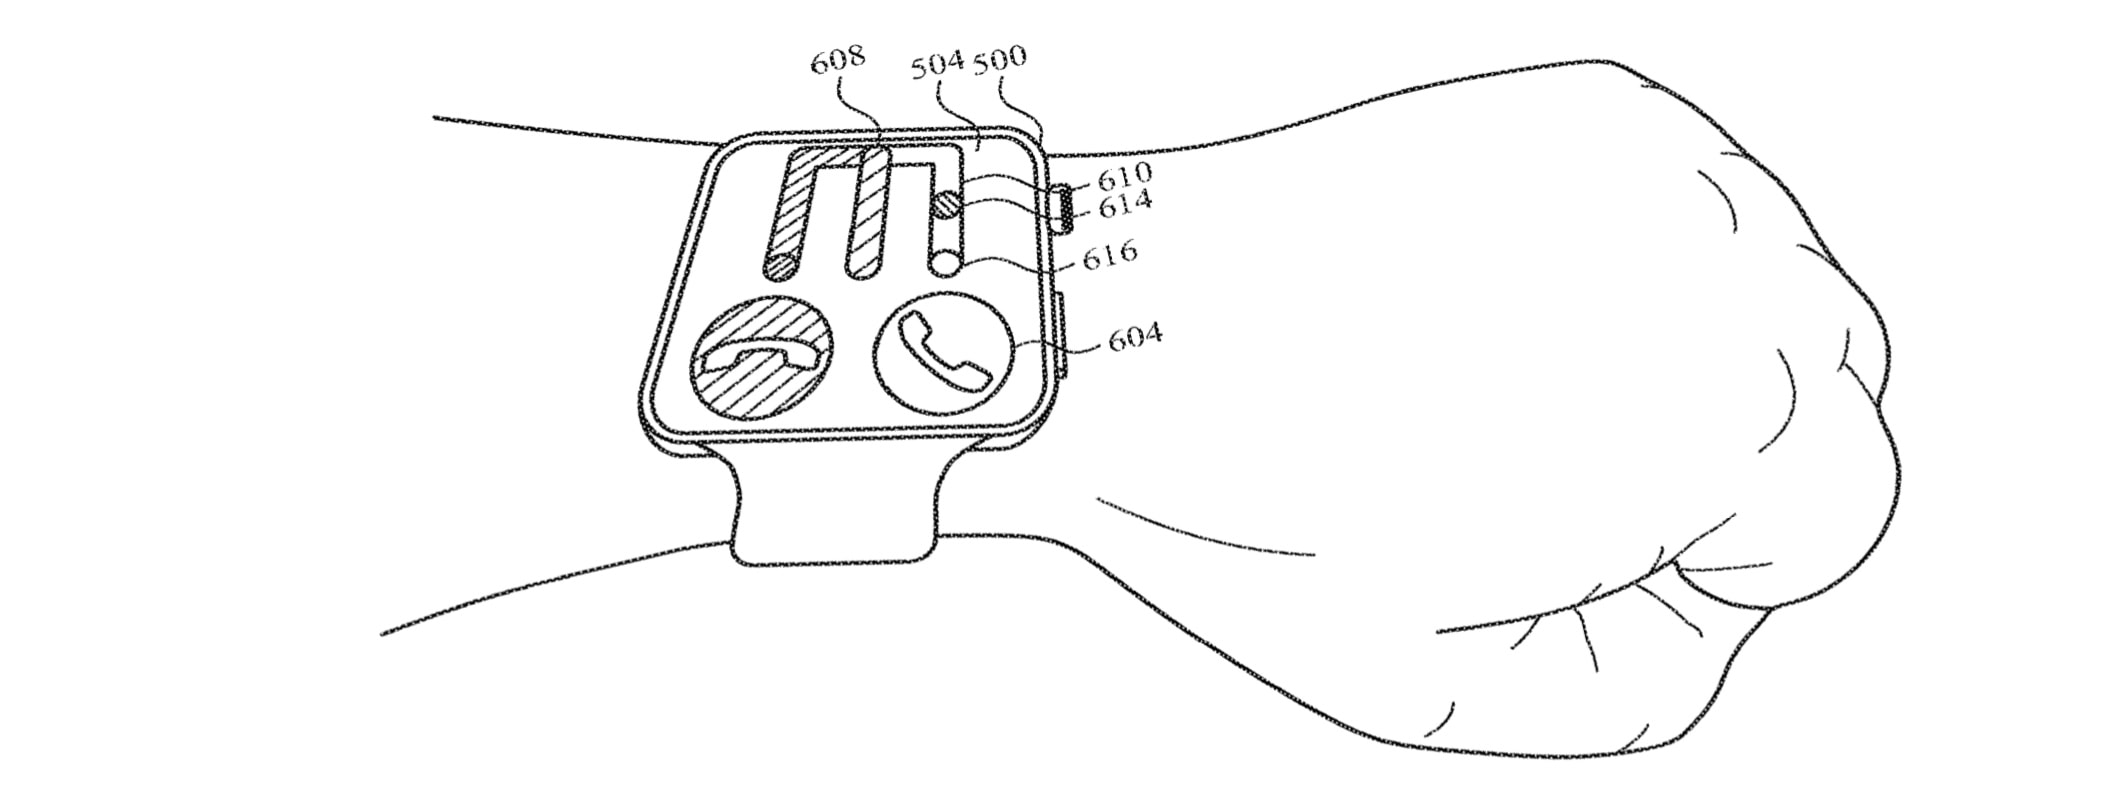 Proposed Apple Watch gesture system